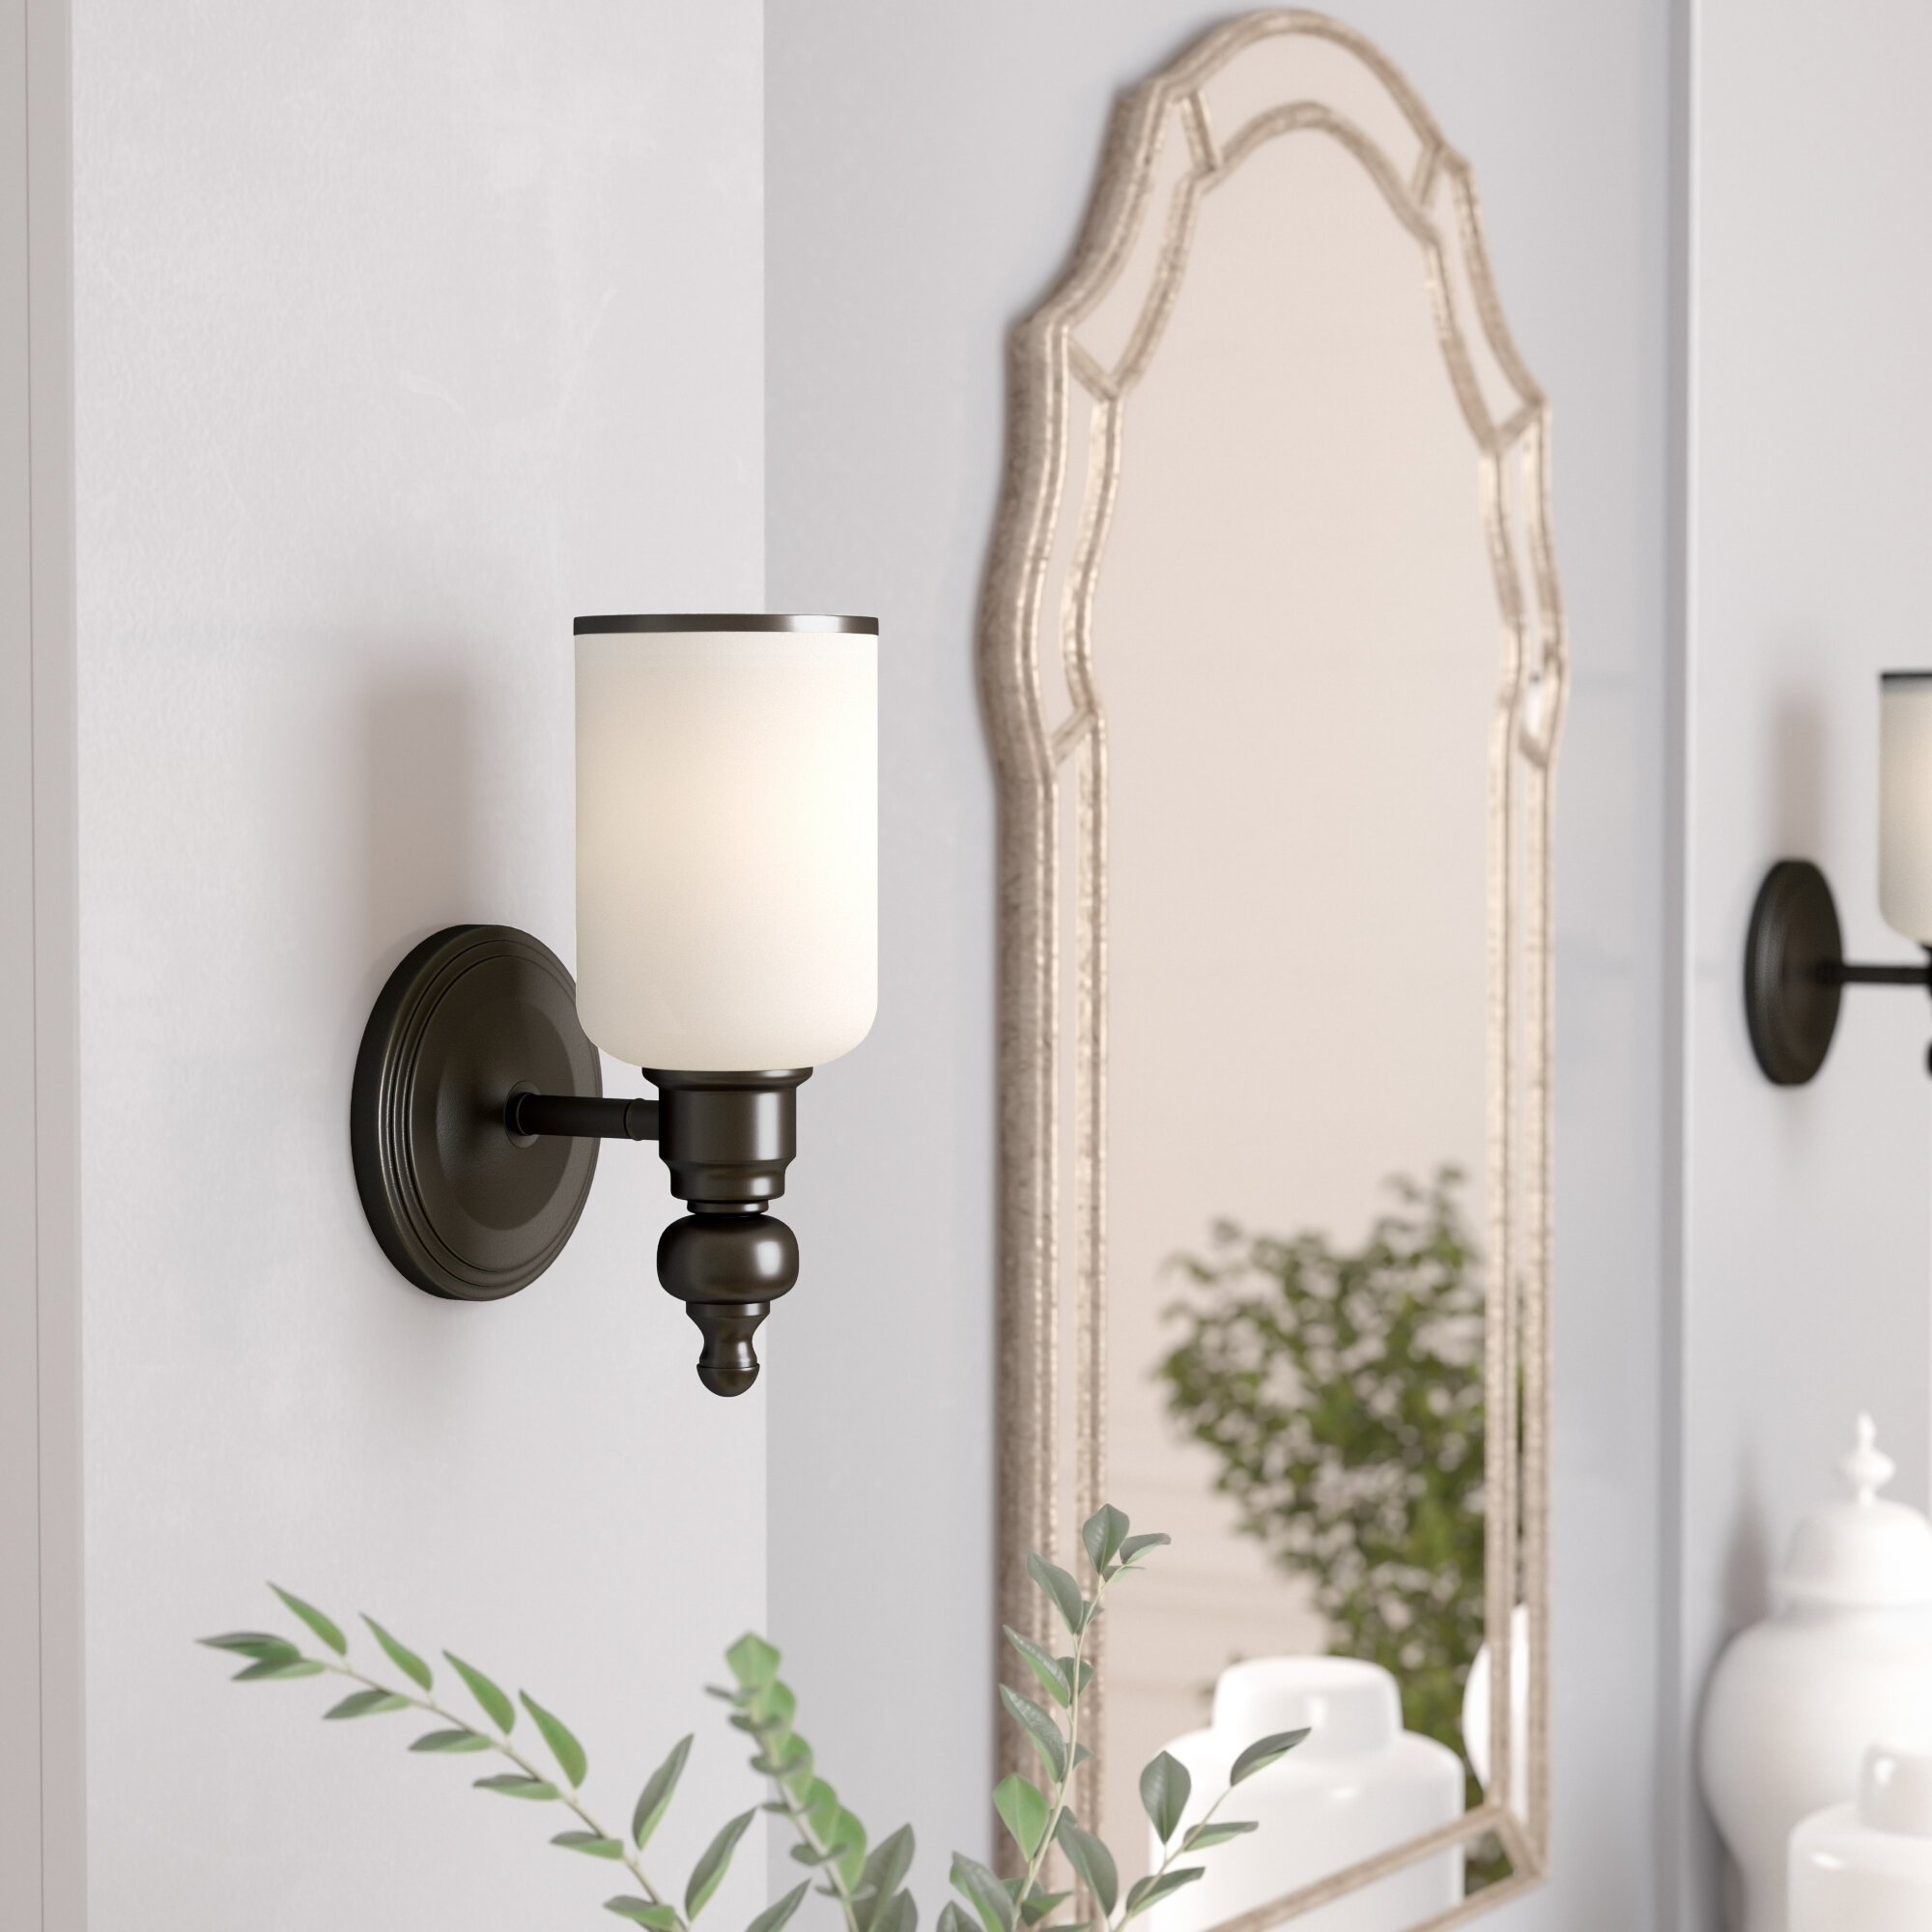 Pinevalley 10-Light Bath Sconce